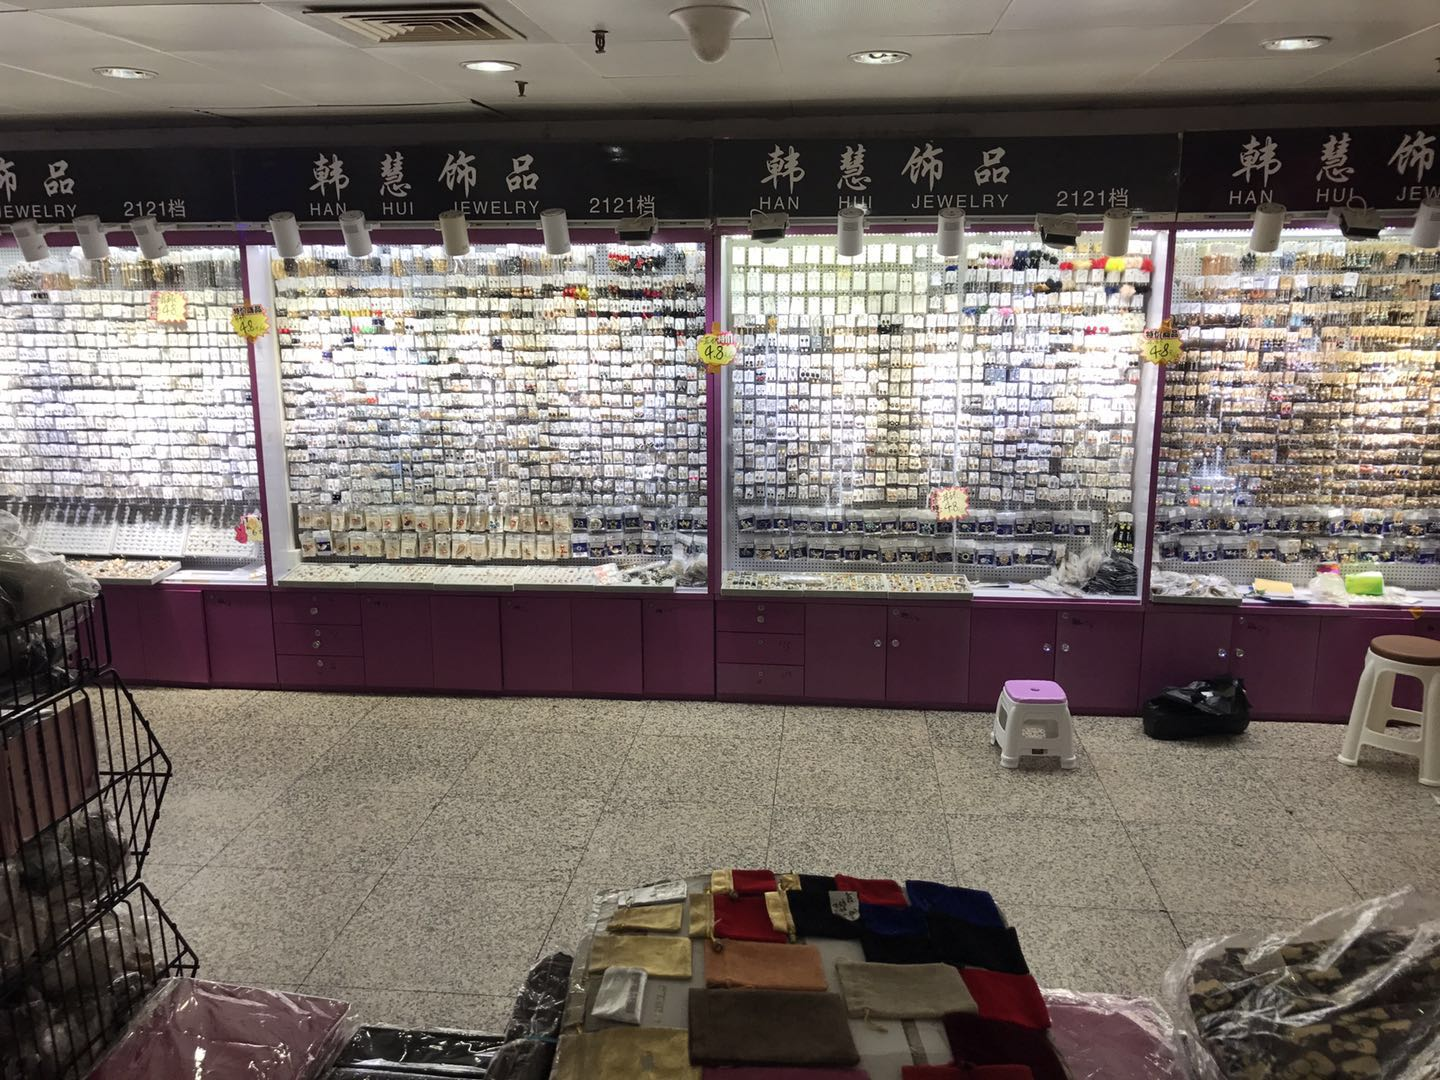 Taikang jewelry wholesale market in Guangzhou, China-10